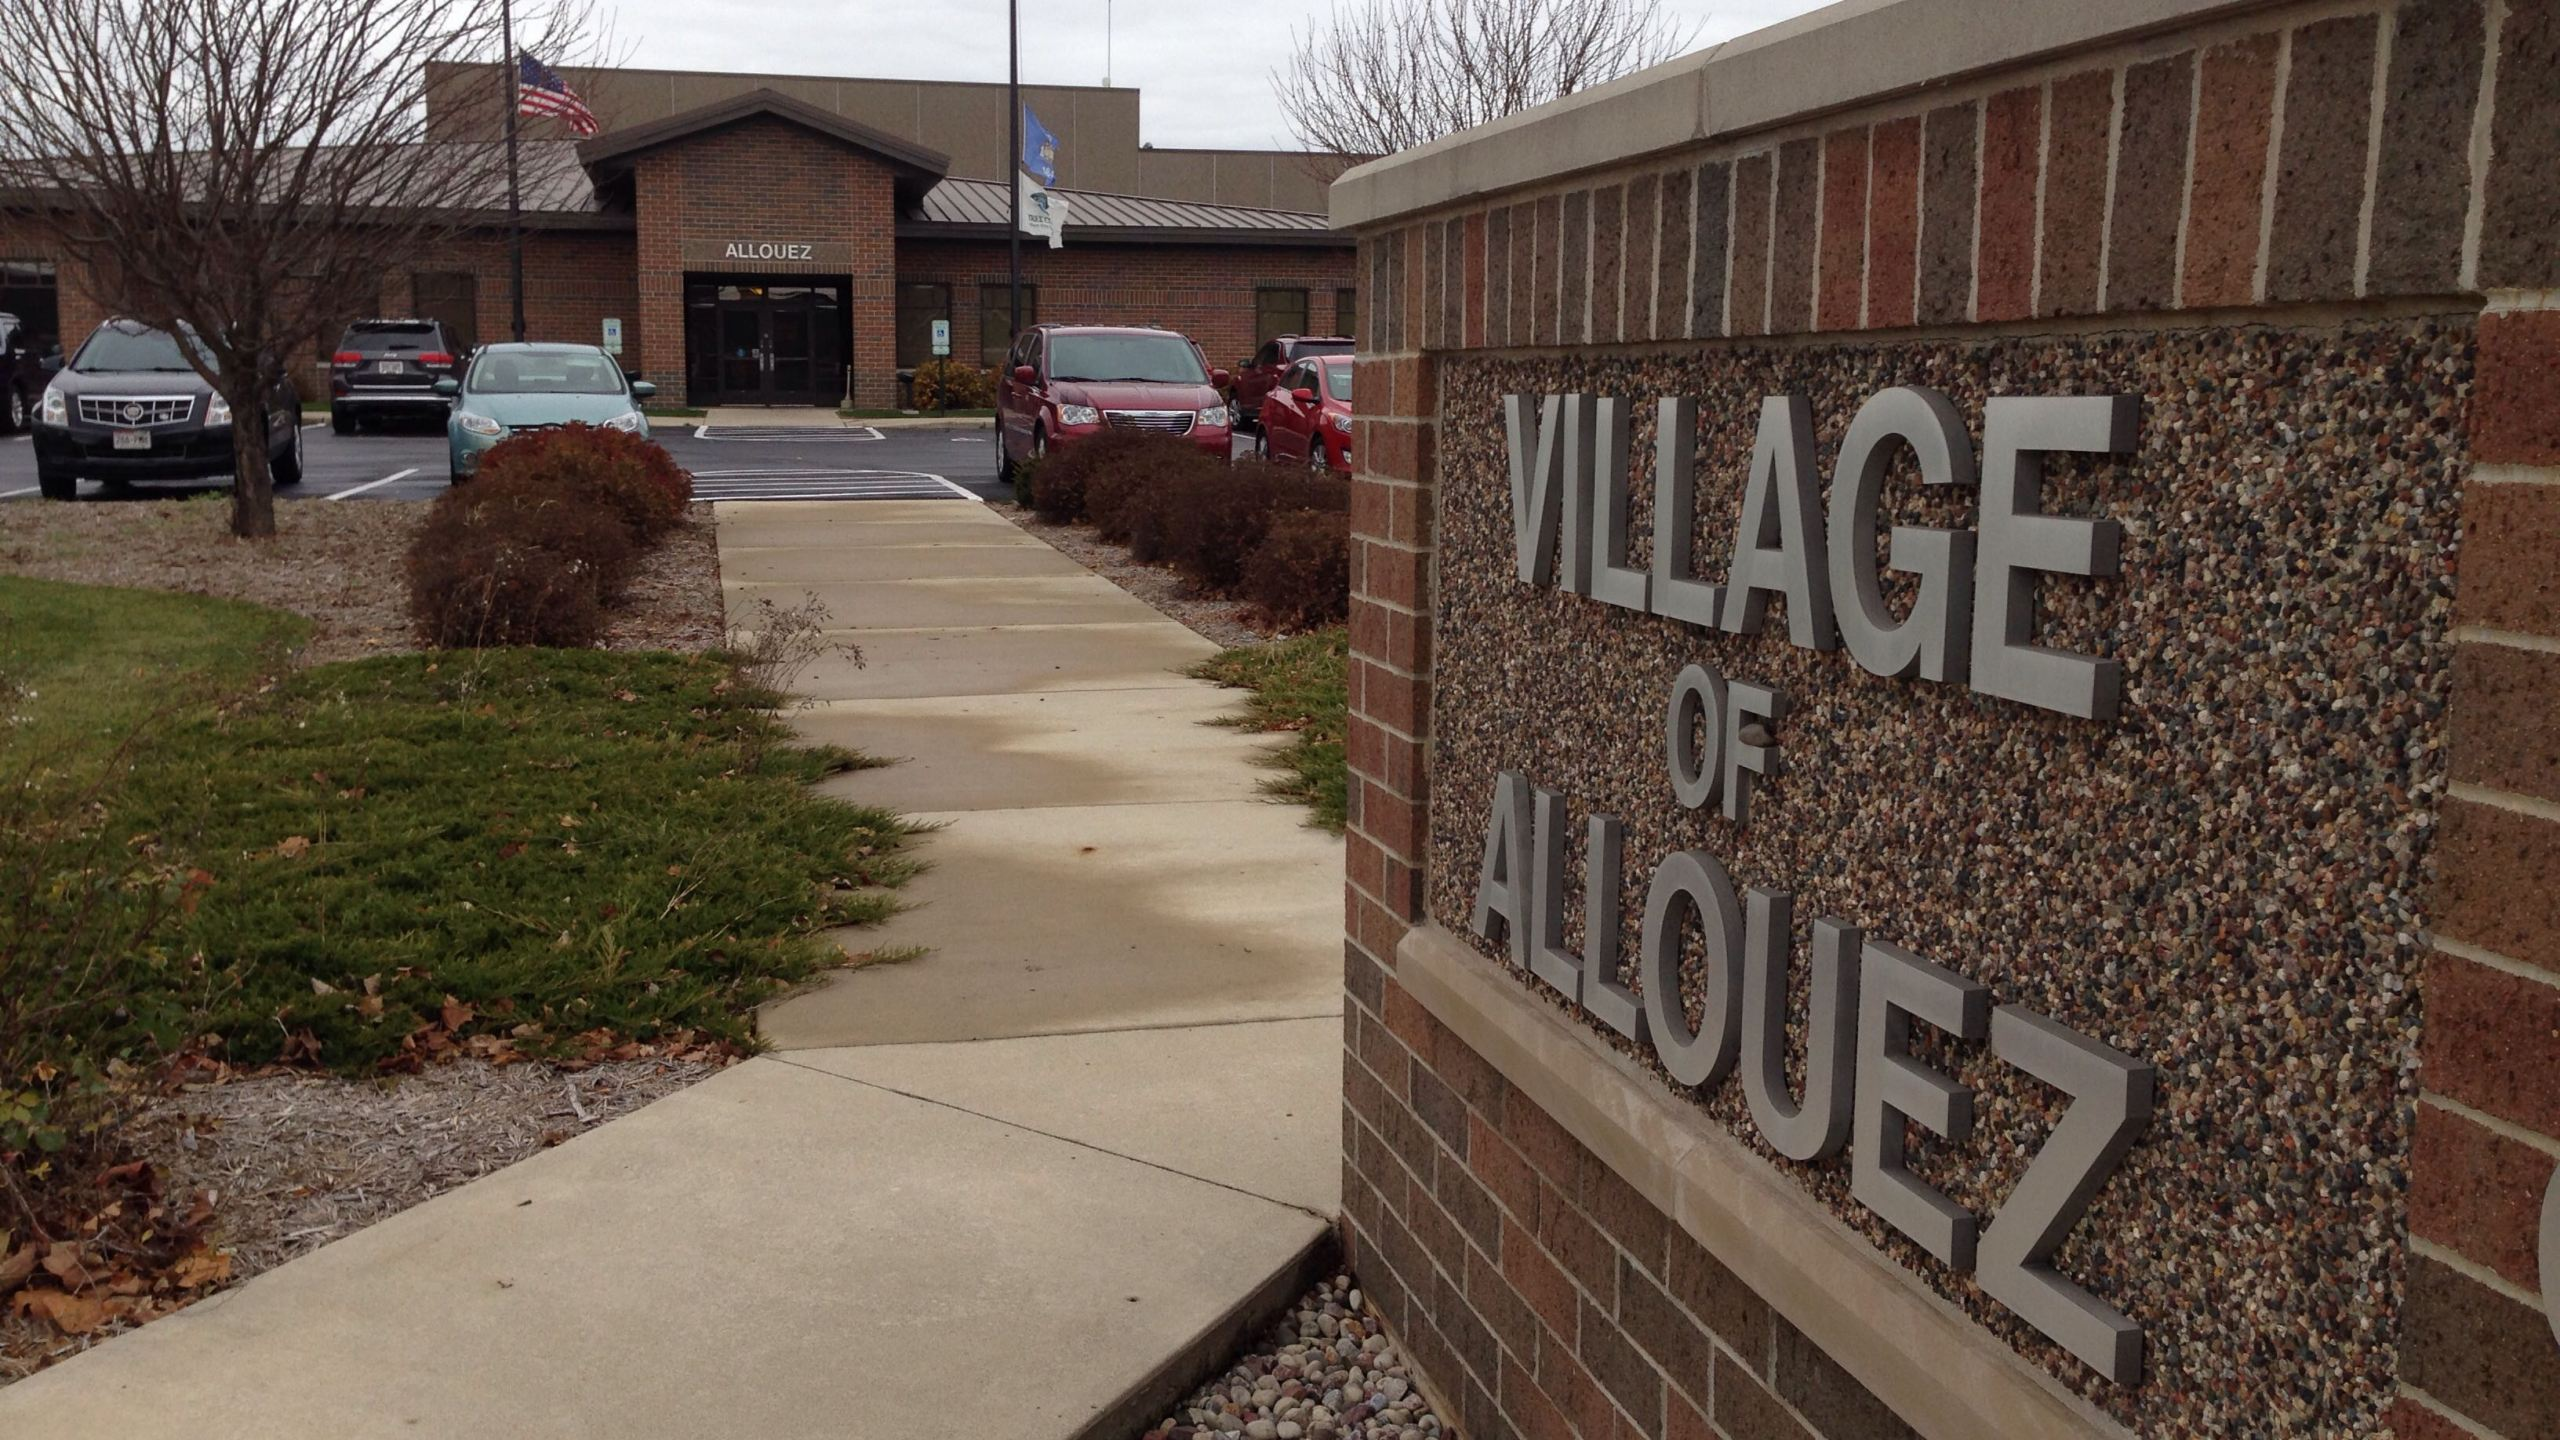 ALLOUEZ VILLAGE HALL